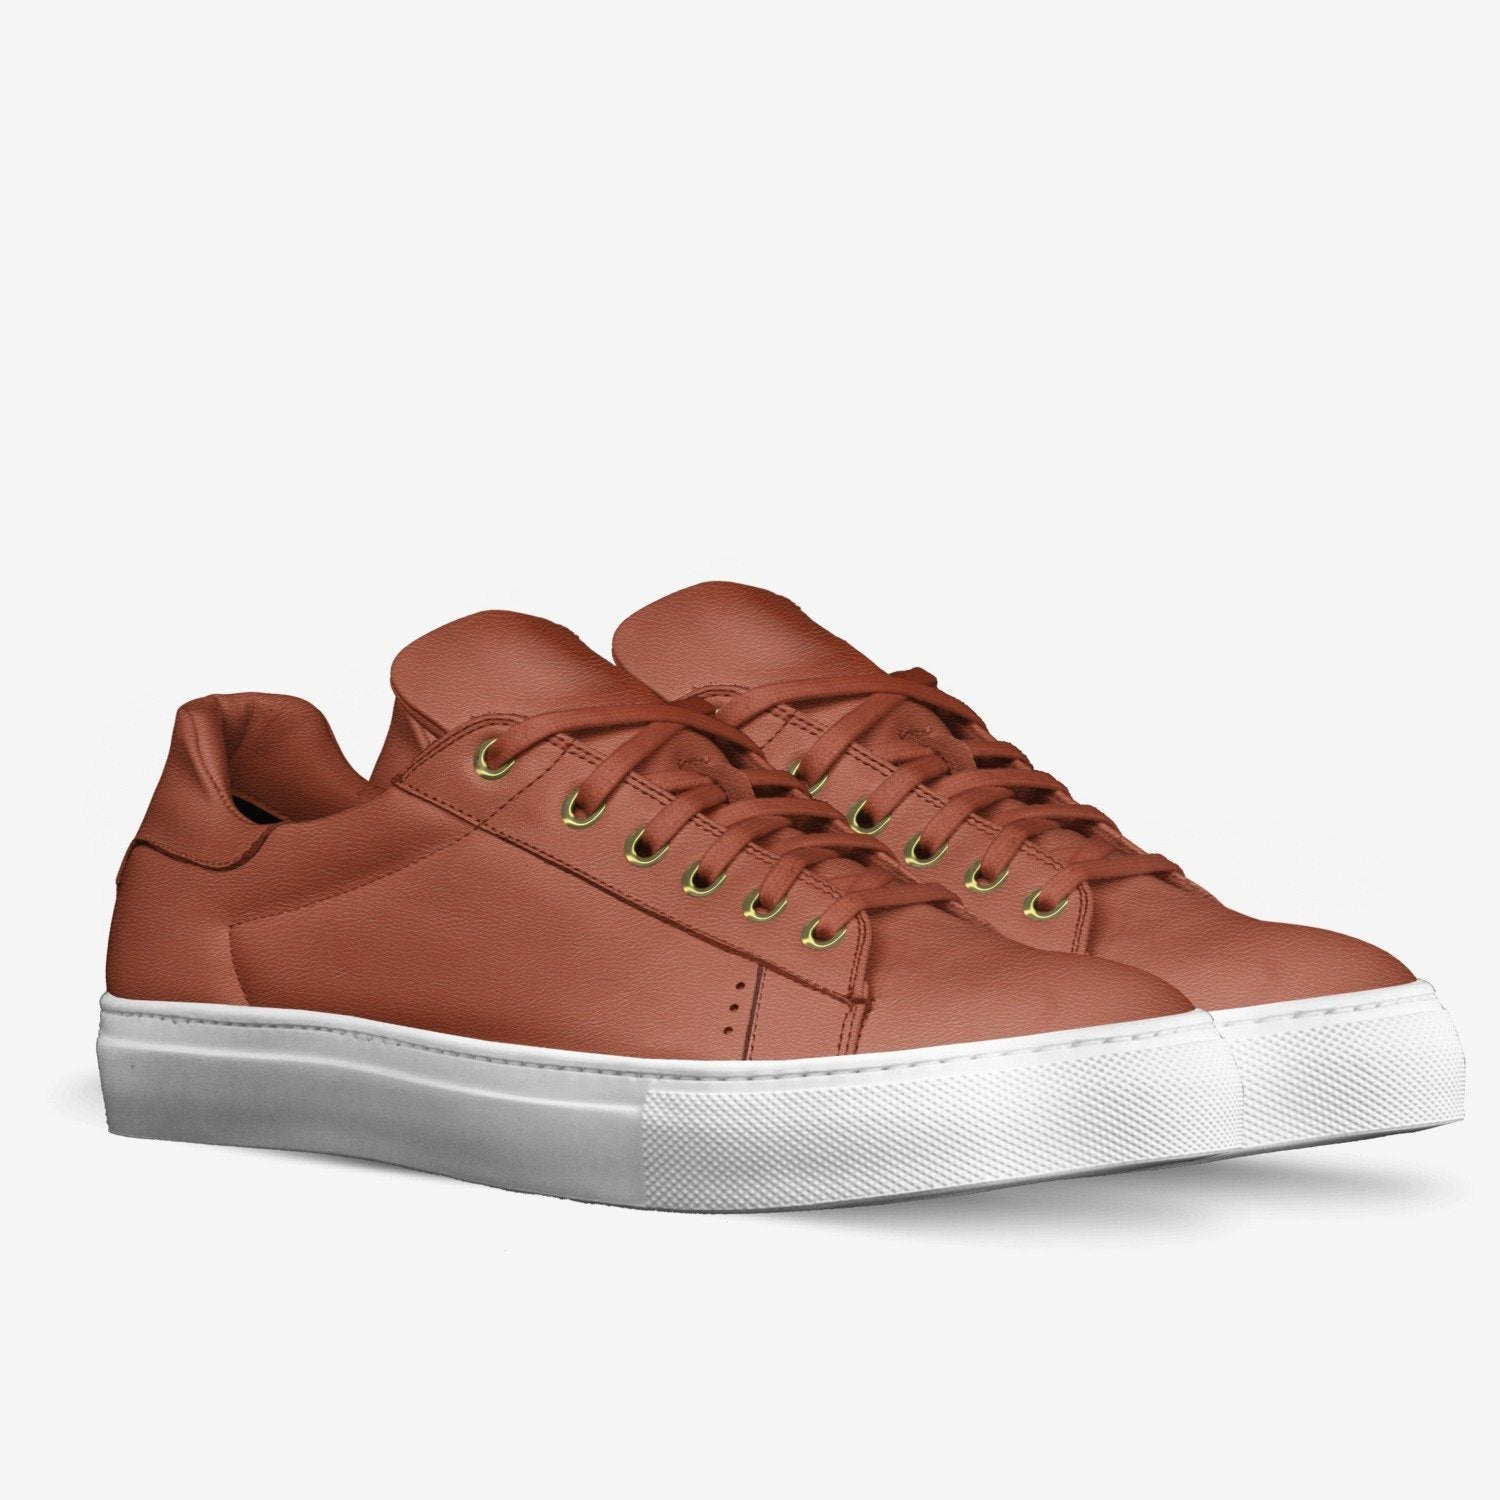 LORENZO LEATHER SNEAKERS IN VERMILLION | Poor Little Rich Boy Clothing